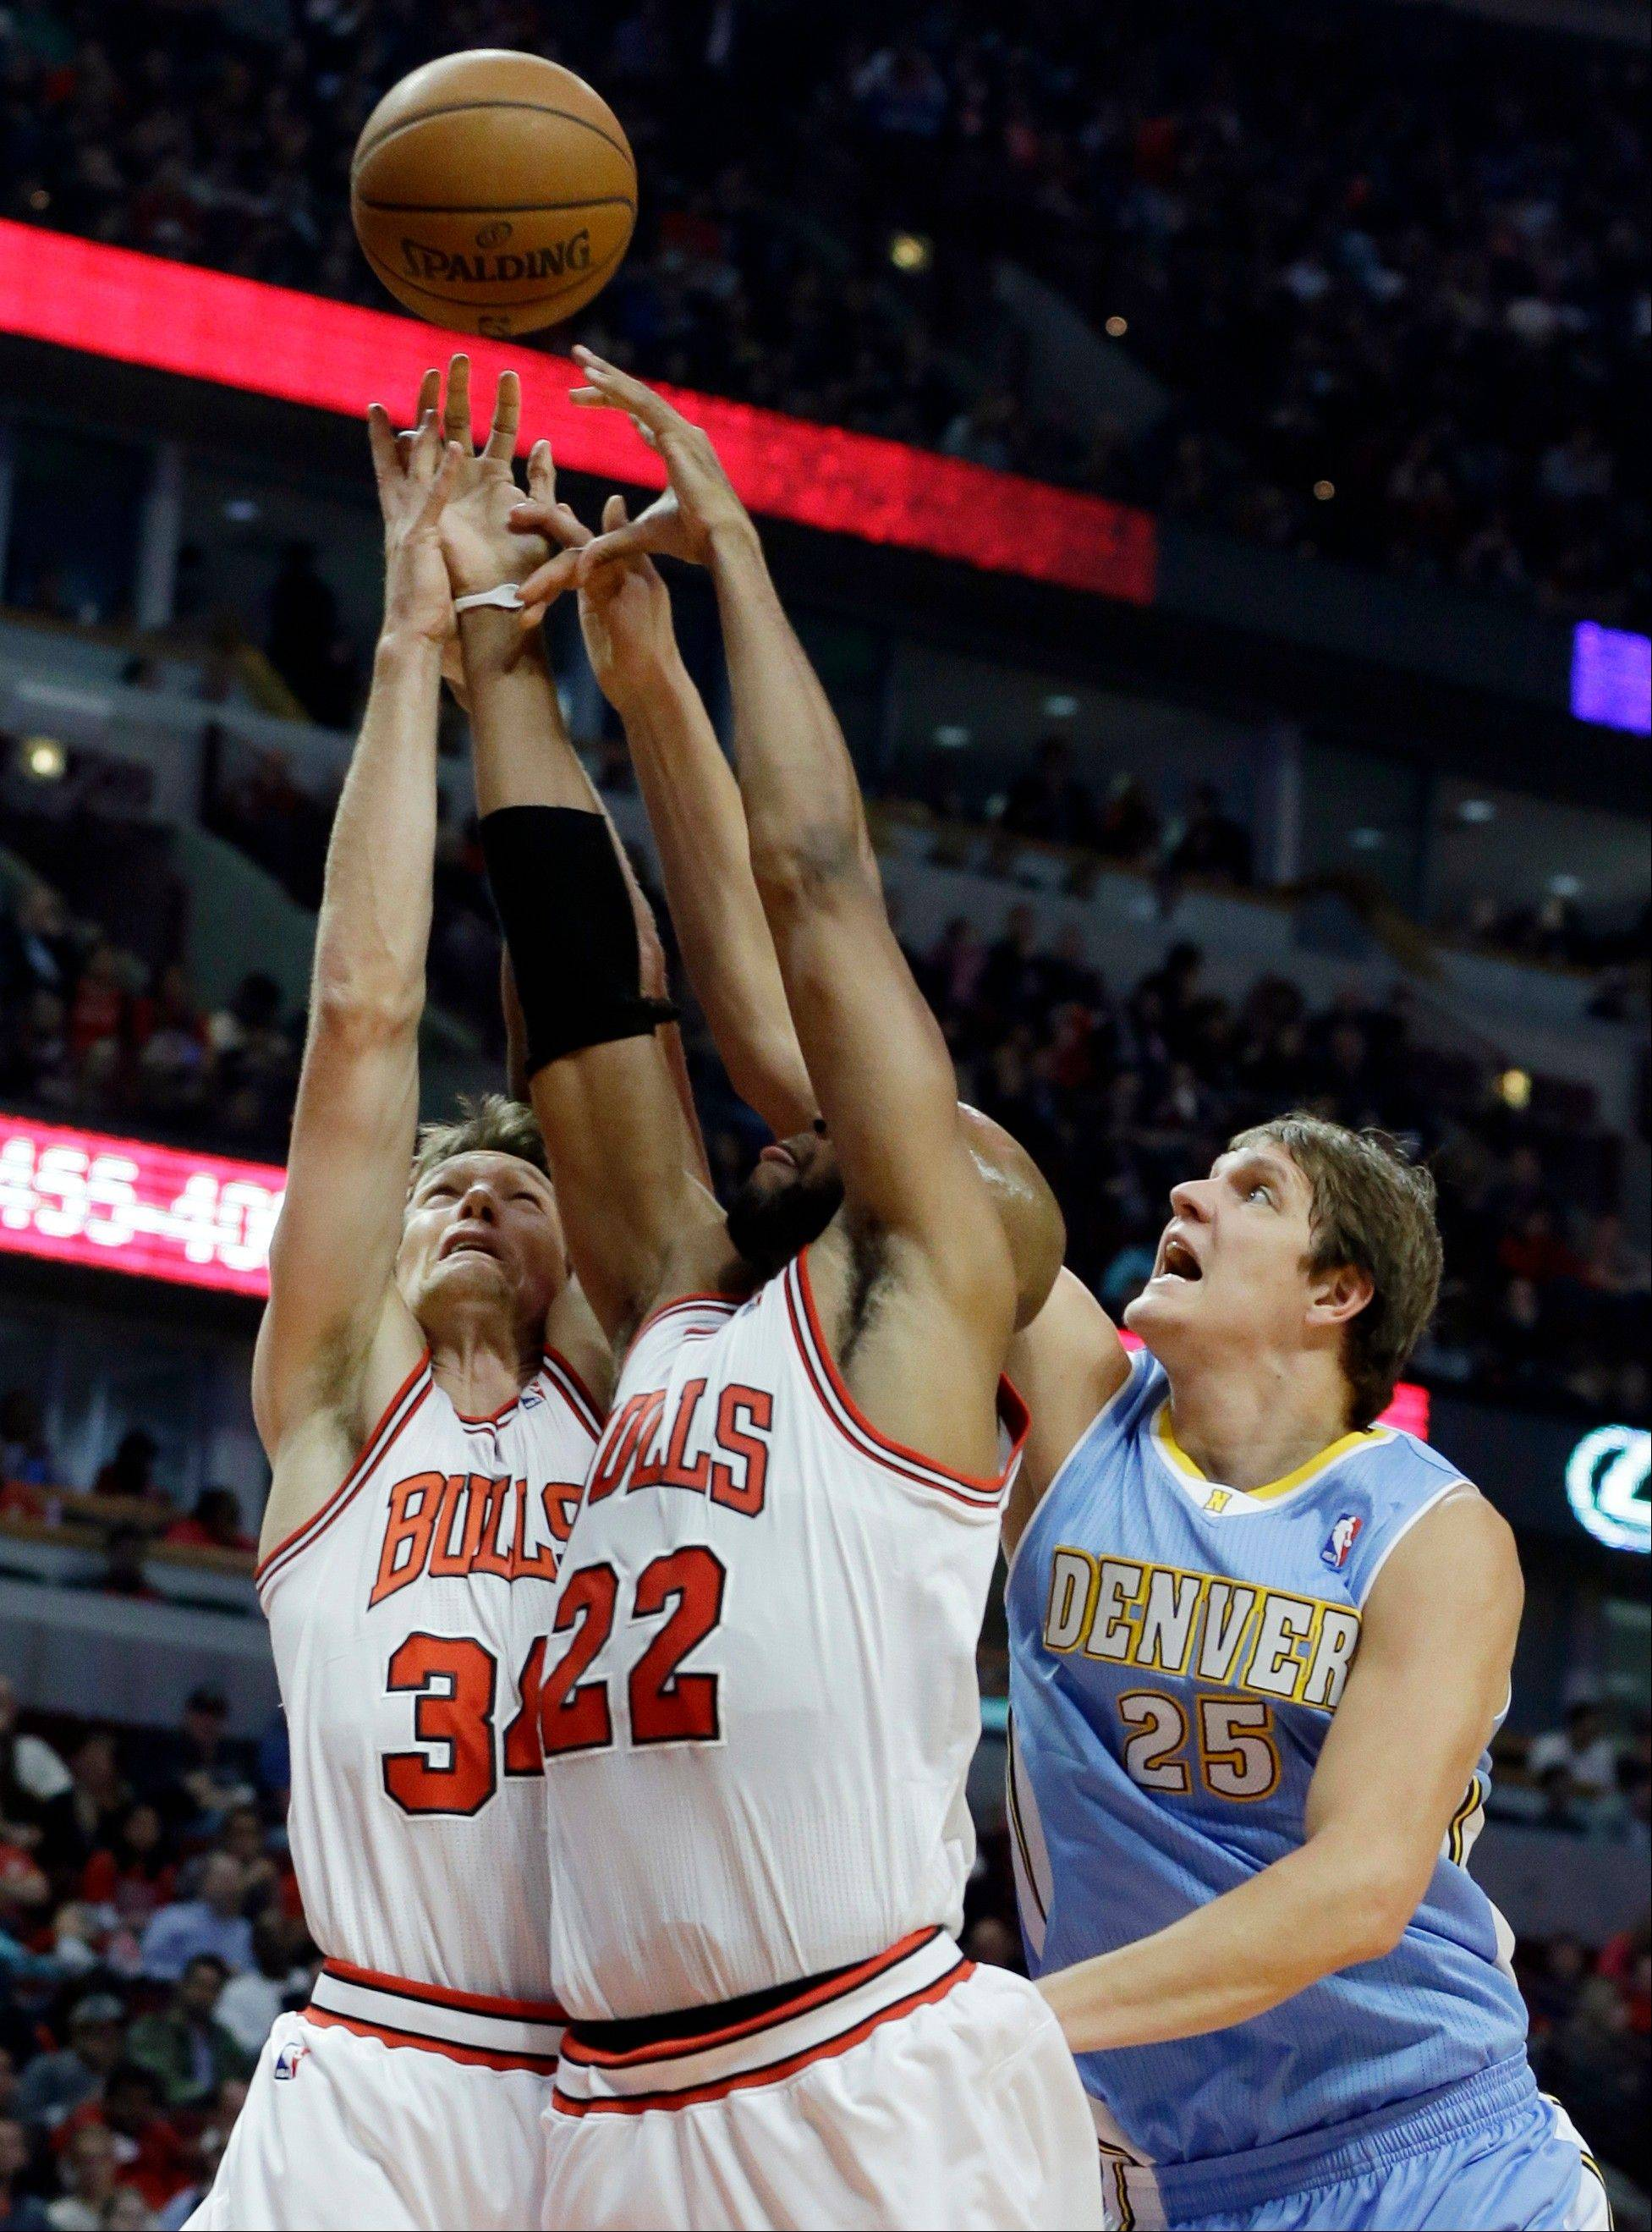 Bulls end perfect preseason with 94-89 win over Nuggets